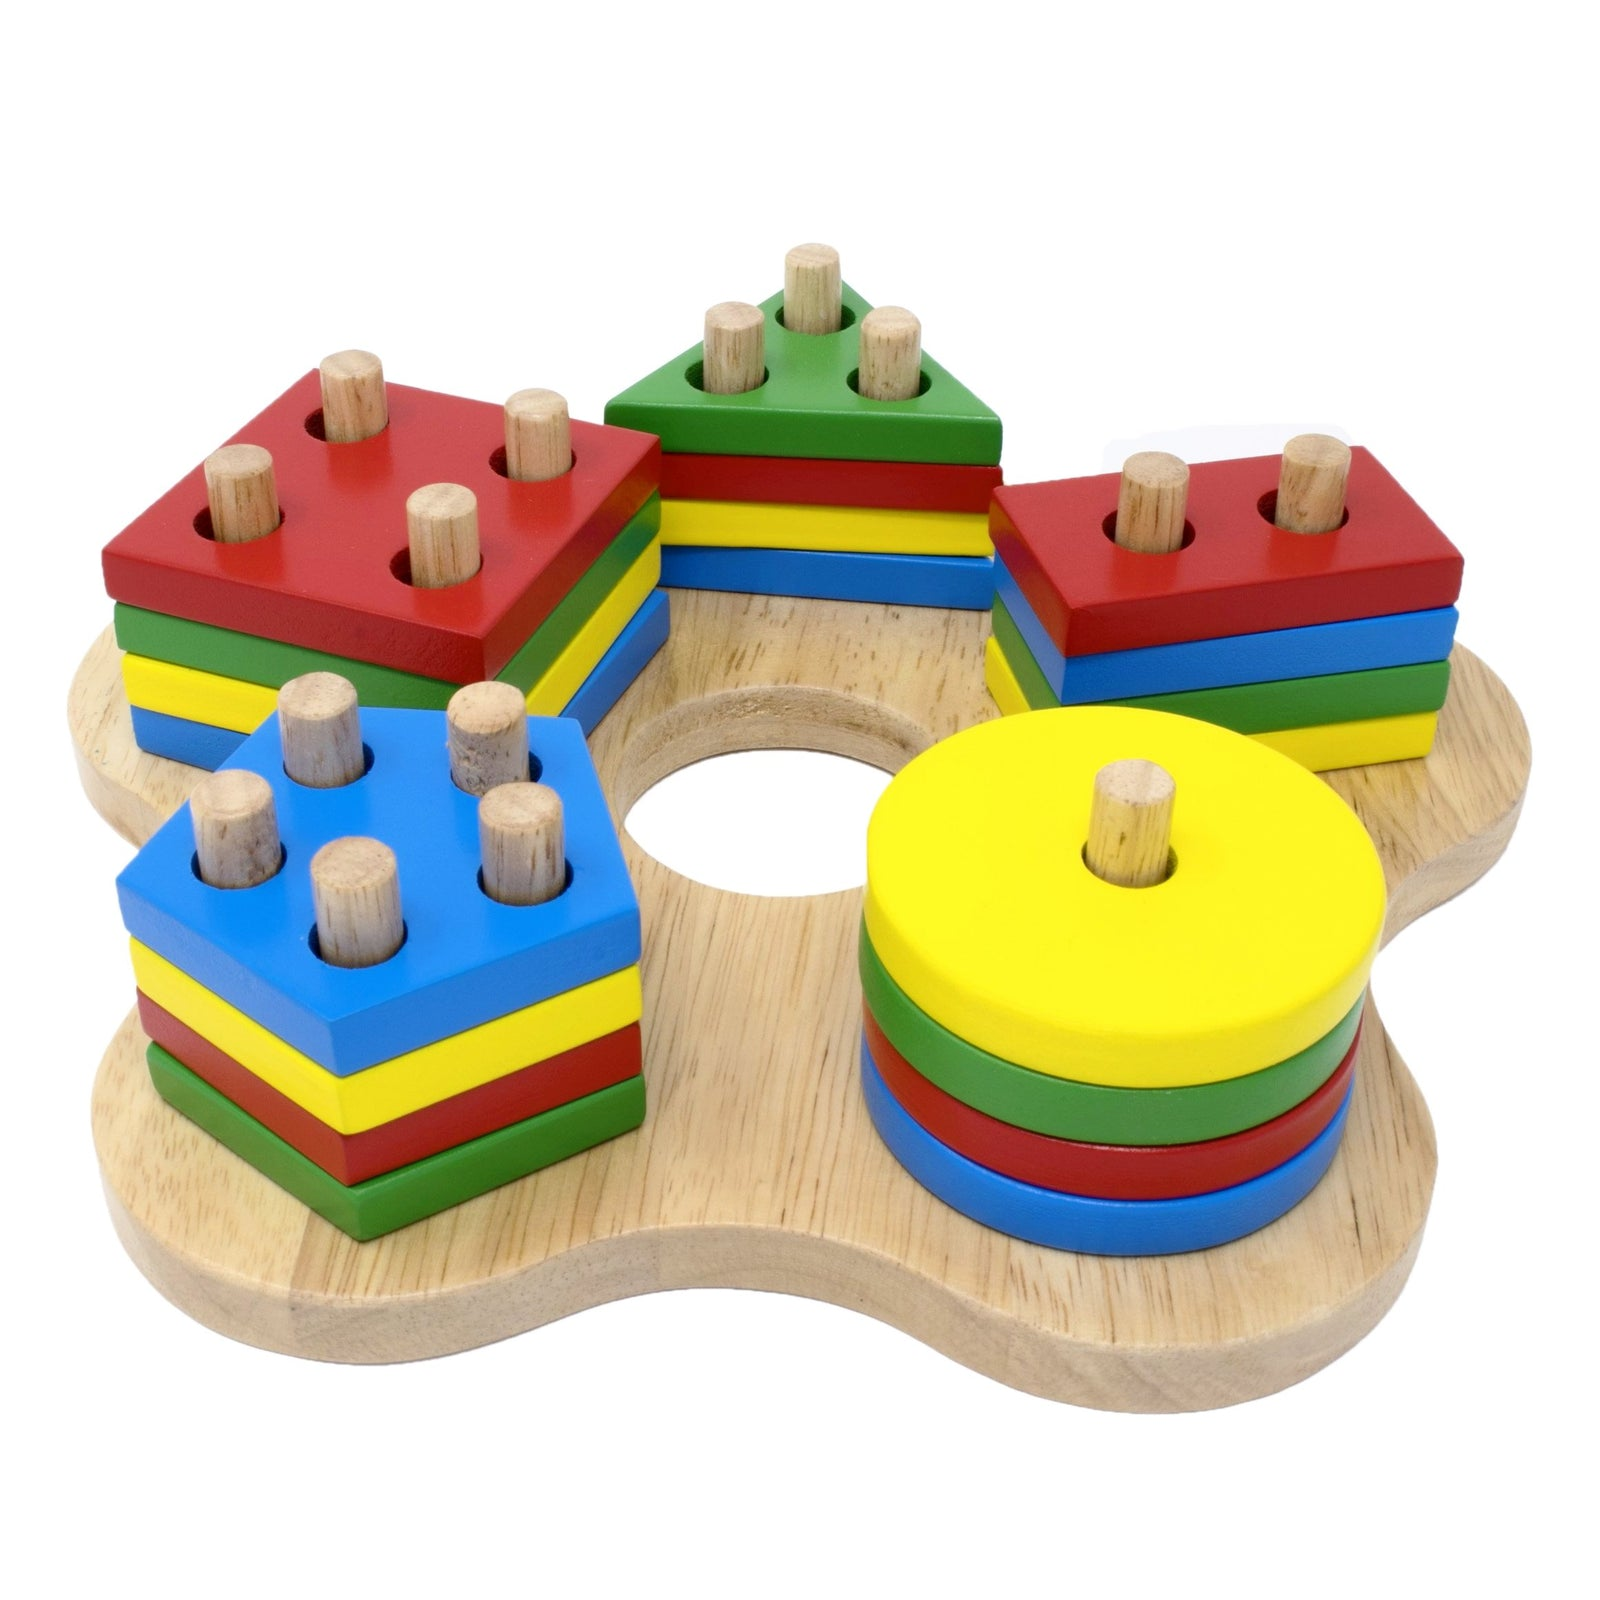 Stack Sort Geometric Early Learning Wooden Toy Educational Toy